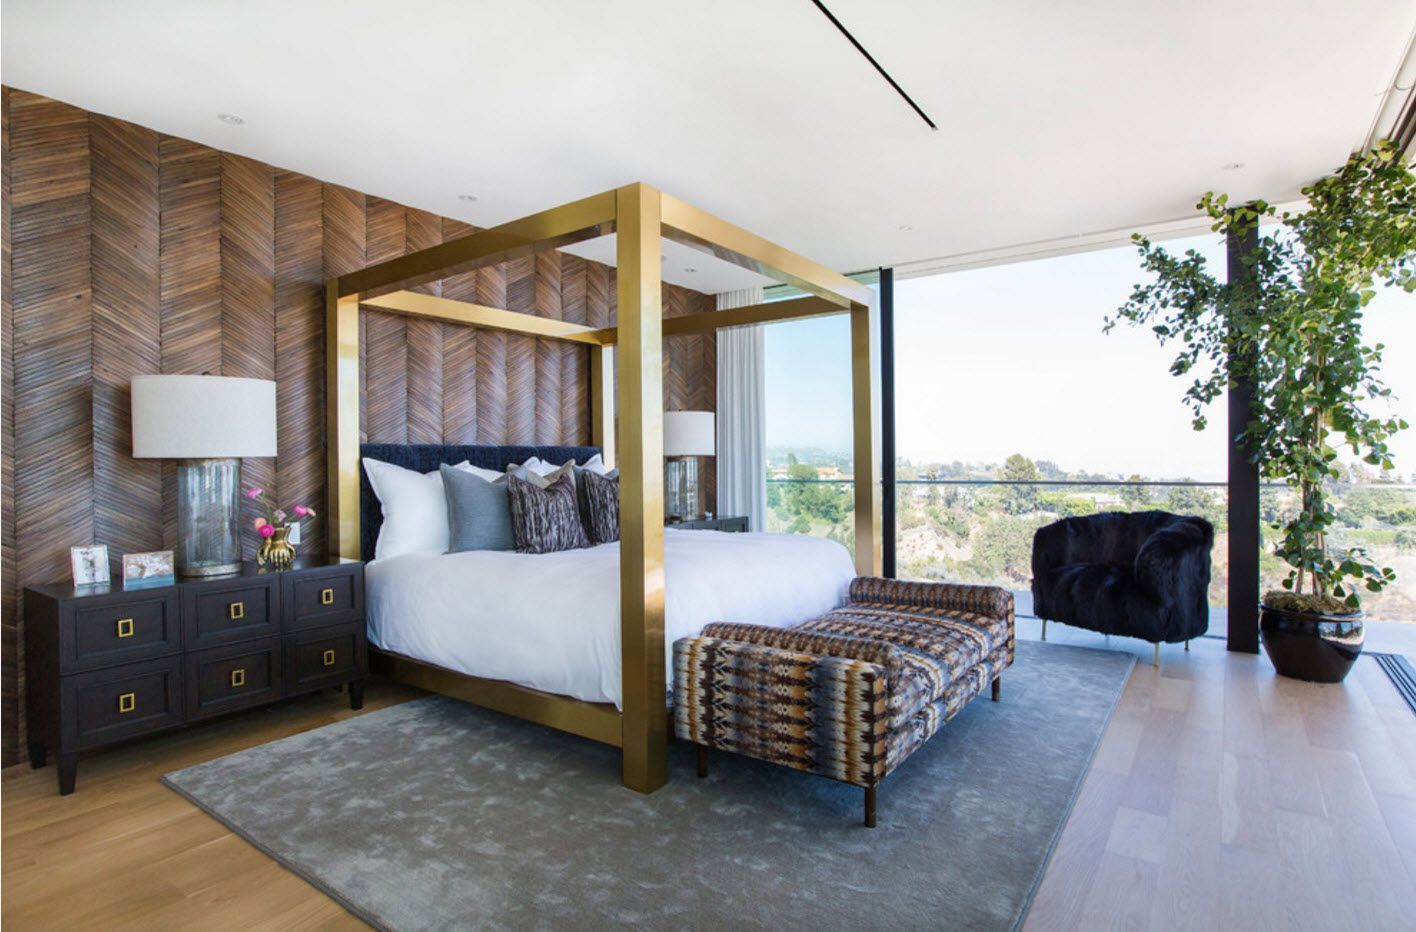 Solid massive frame of bed's canopy in contemporary style